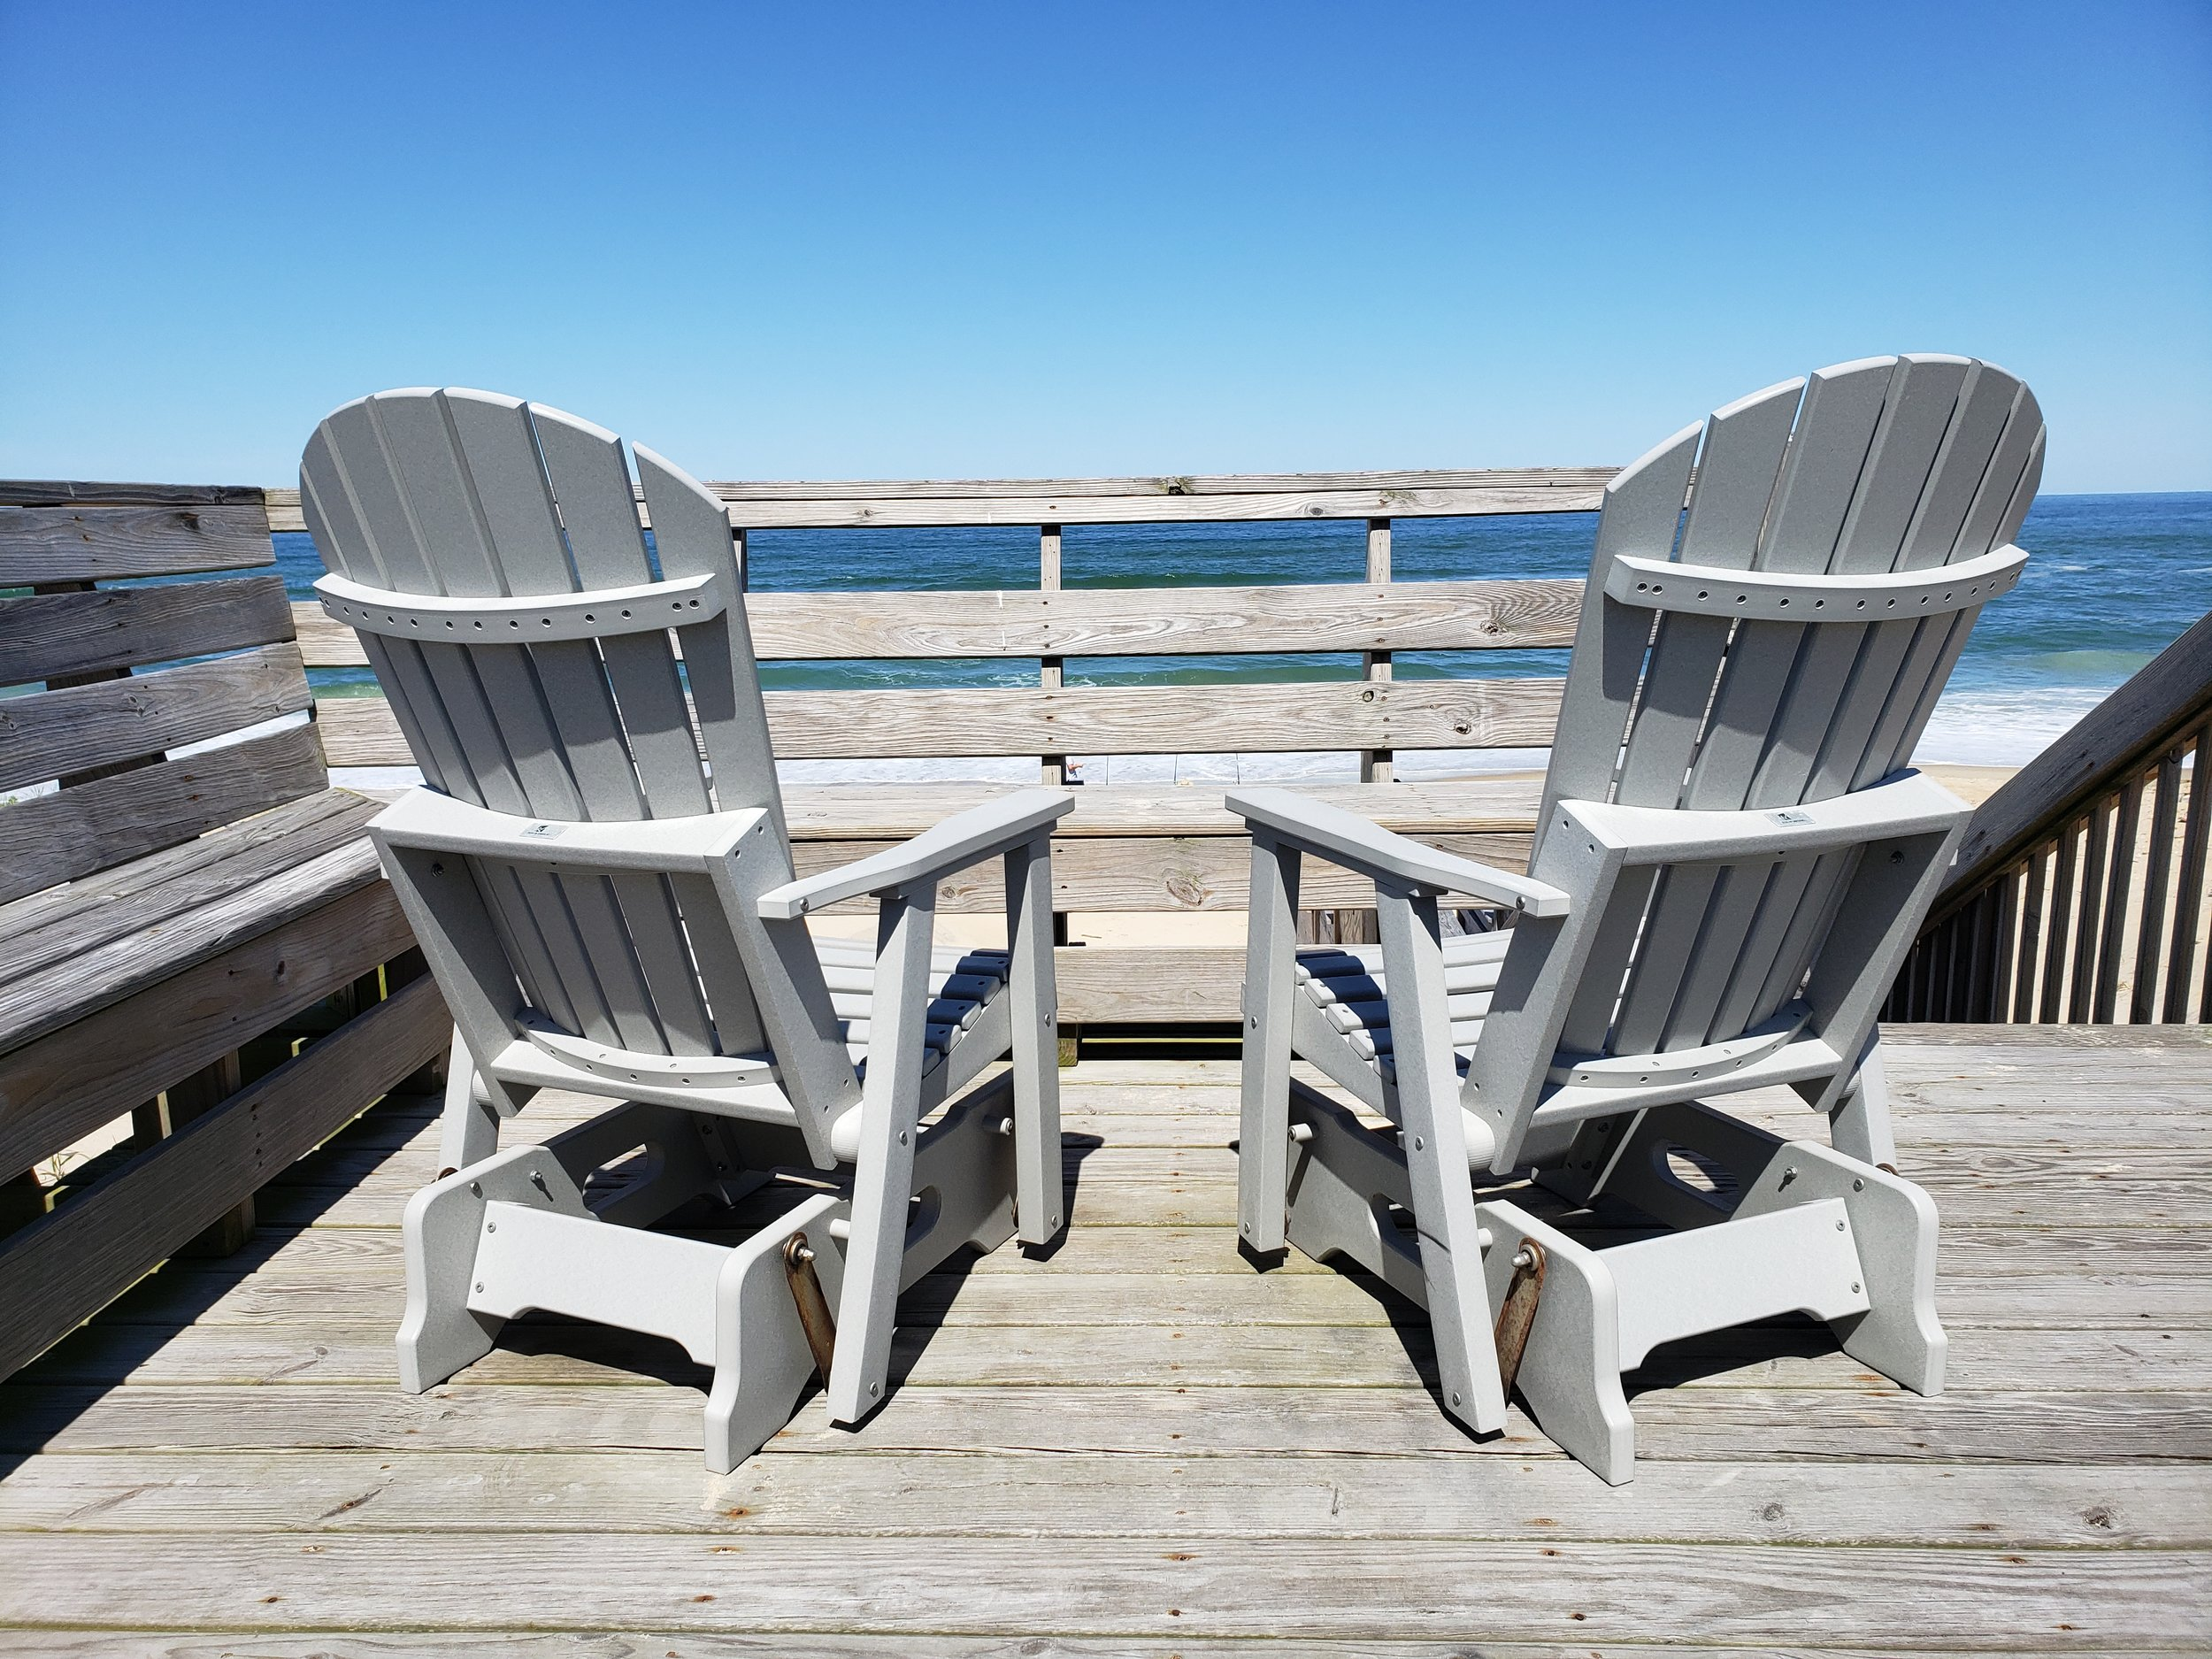 Enjoy all the Atlantic Ocean has to offer from our comfy chairs on the walkover